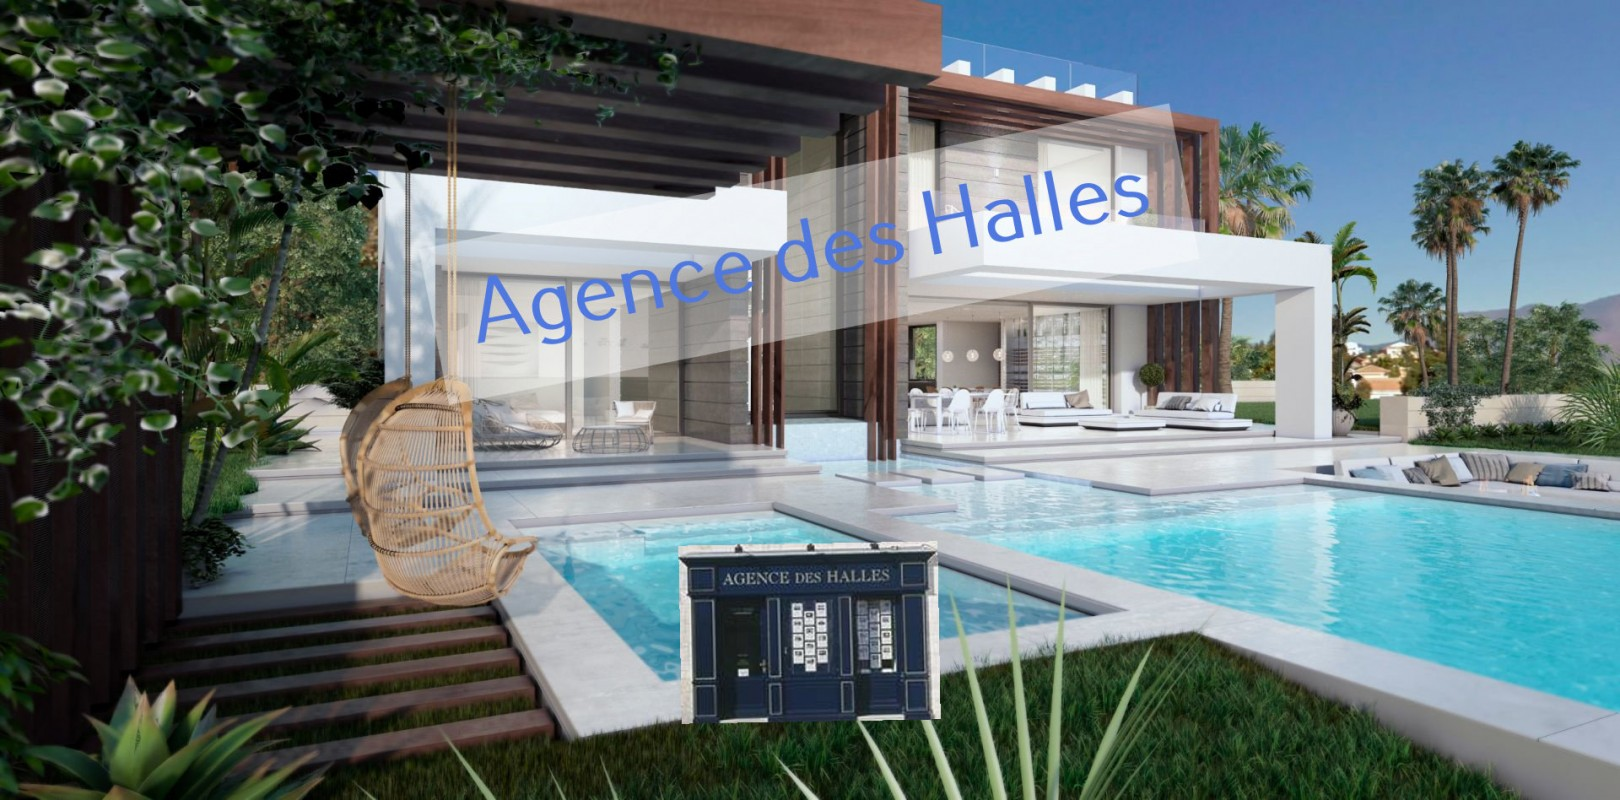 For sale House 223m² in Marbella Costa del Sol ?. House,,. Price to Buy a House is 985000 EUR. In Marbella for sale House. House was published on sales list 29.1.2020 1704857. Selling House in Marbella Costa del Sol ?, Spain.